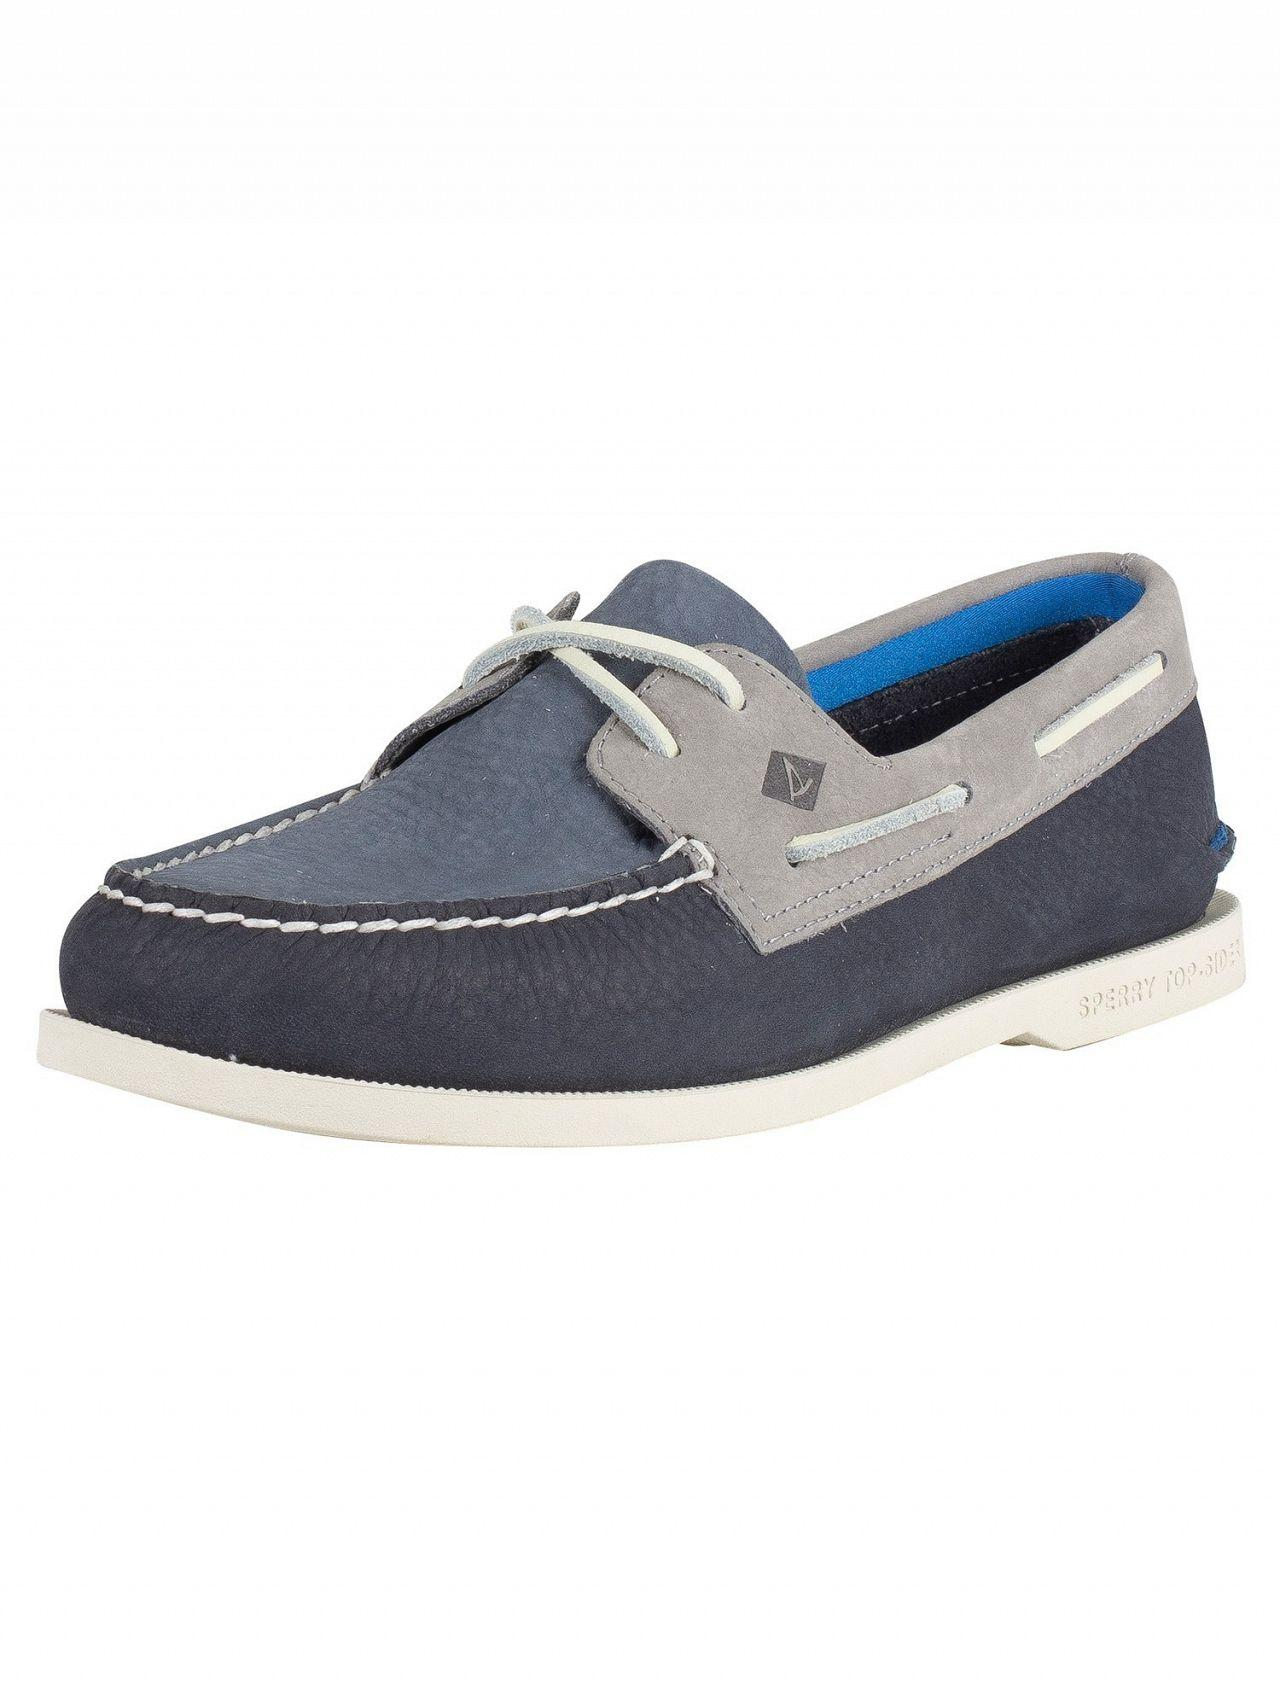 Sperry Top-Sider. Men s Blue Navy grey A o 2- Eye Plush Washable Boat Shoes 3313f3944c2